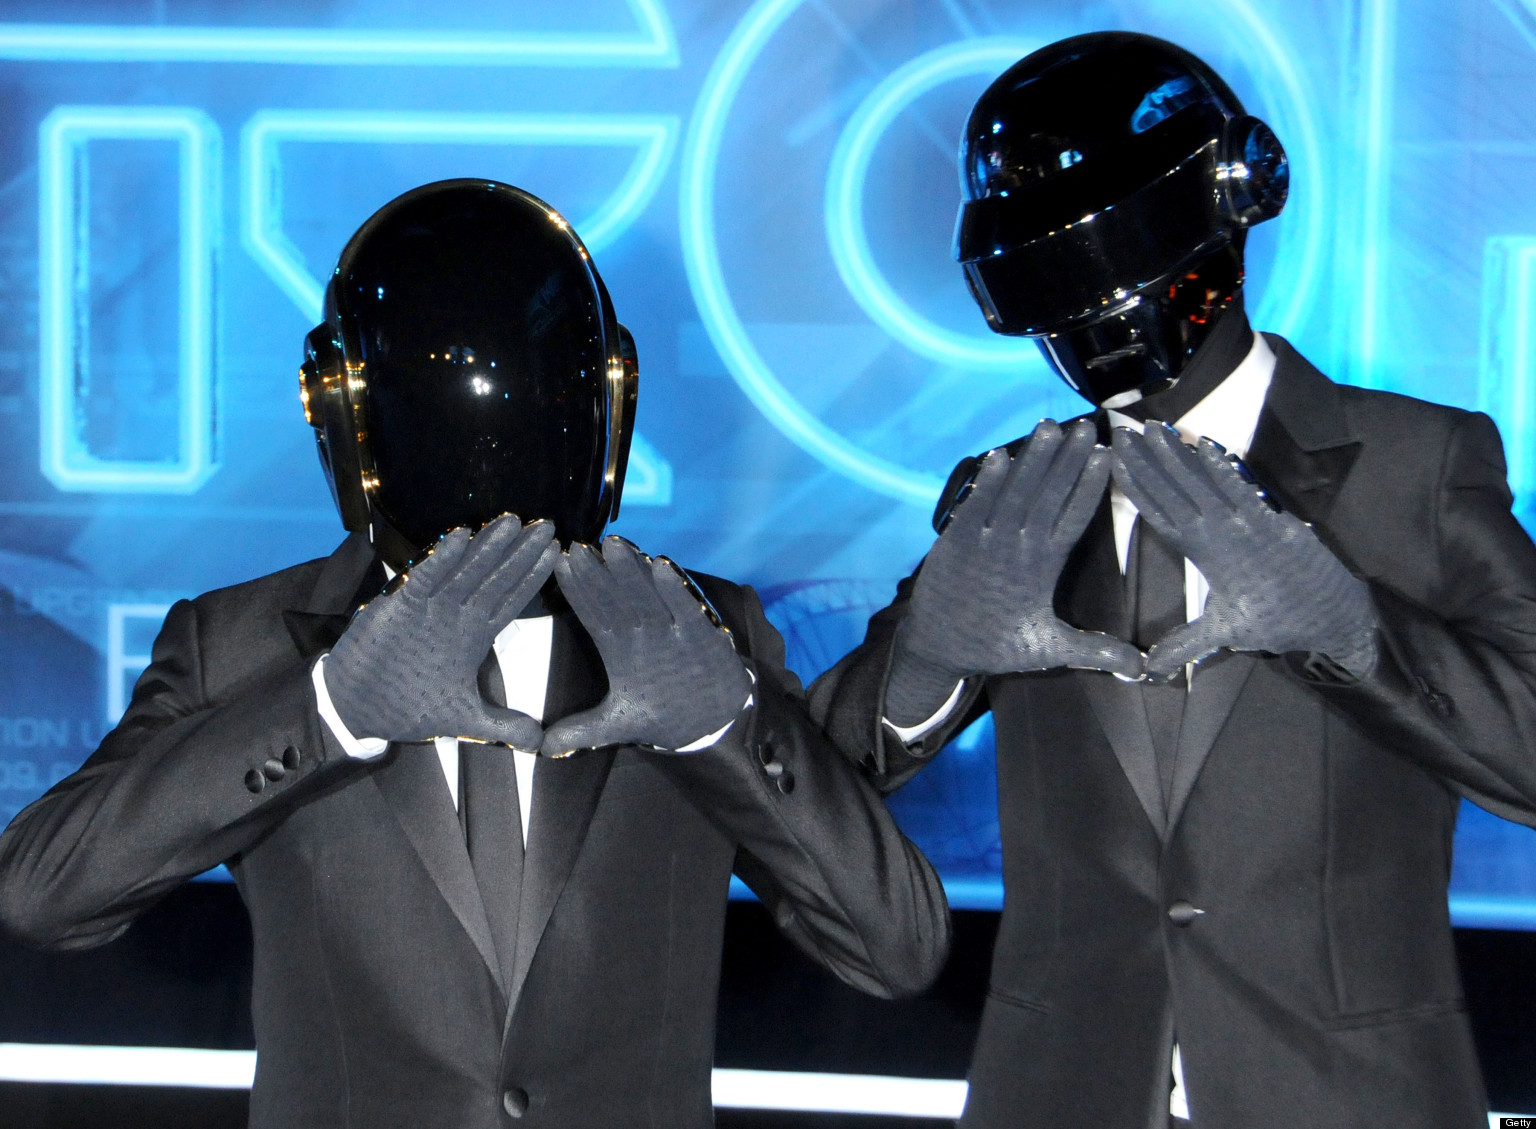 Daft Punk Unmasked Now